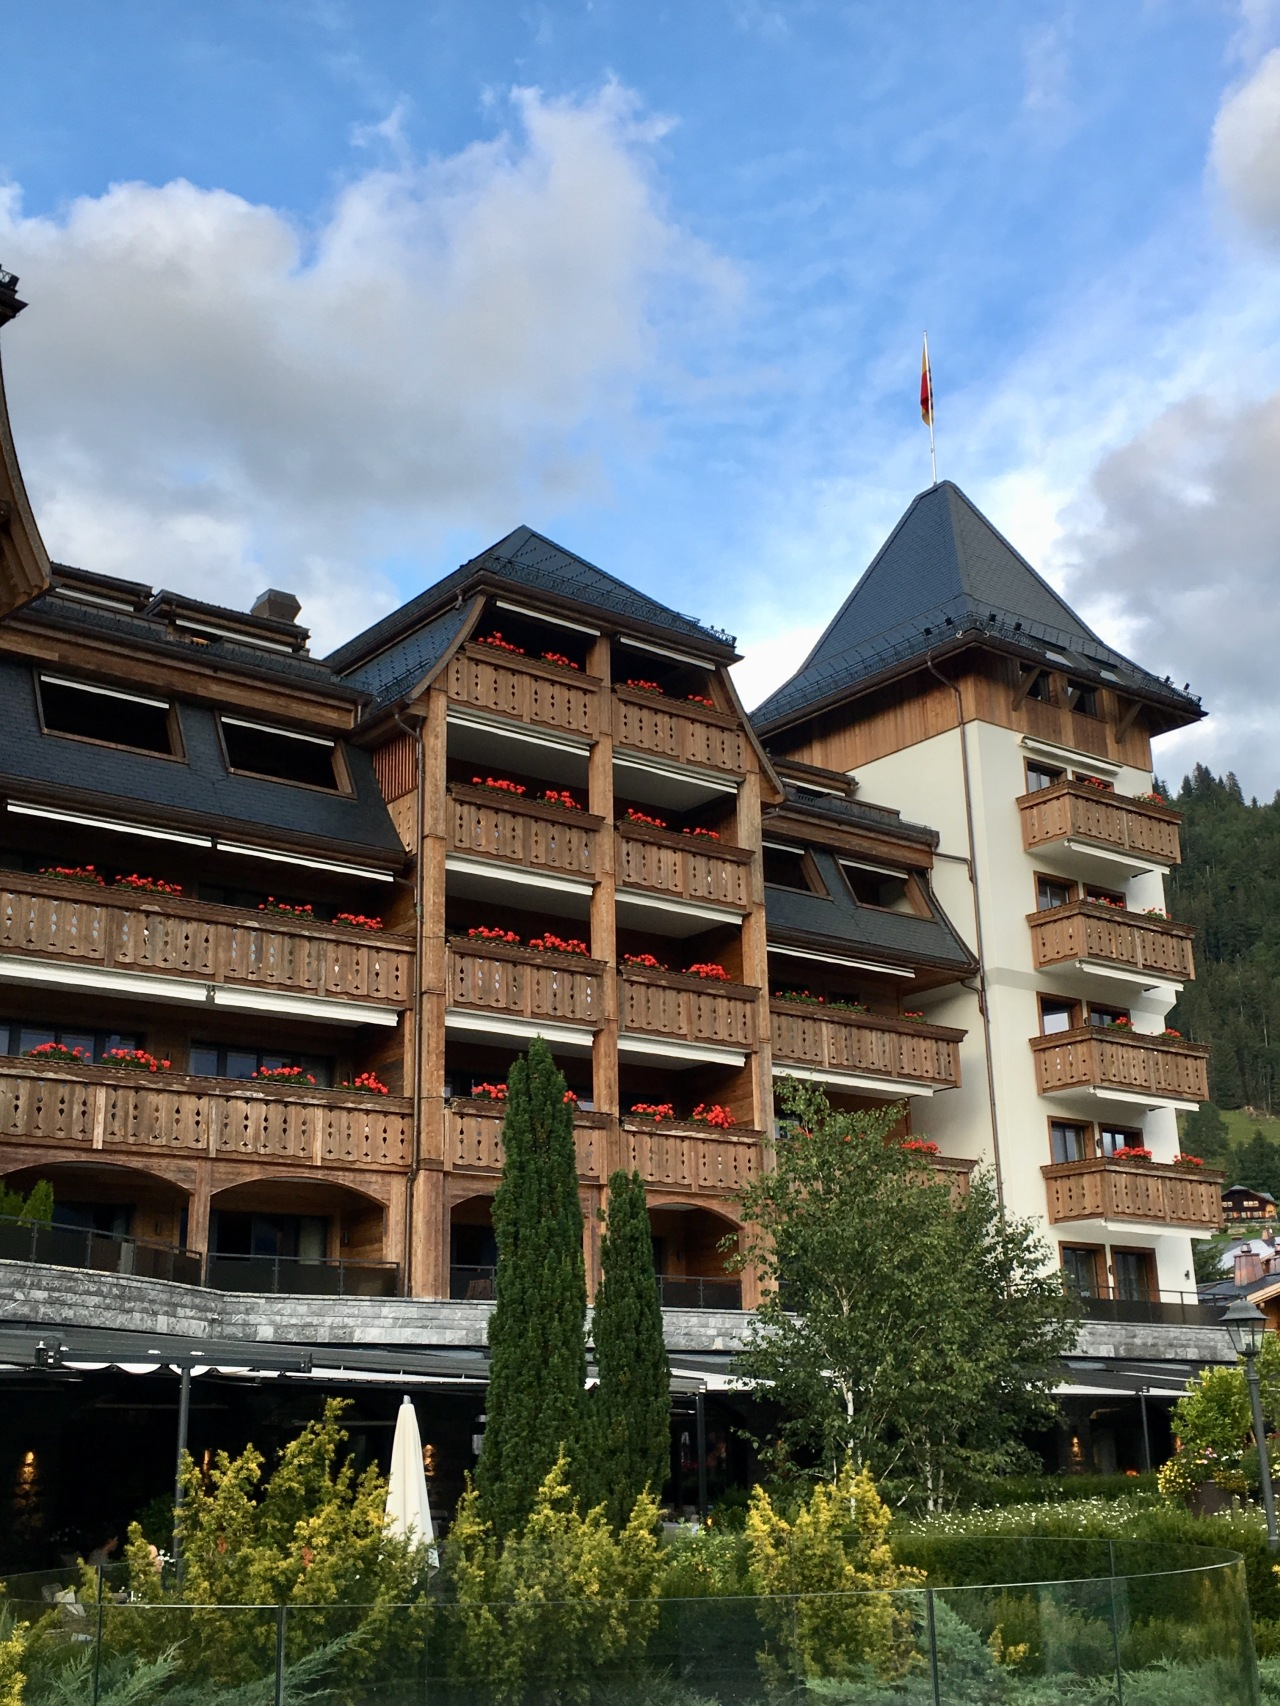 LESS SAVES THE PLANET 2019 – HÔTEL ALPINA GSTAAD